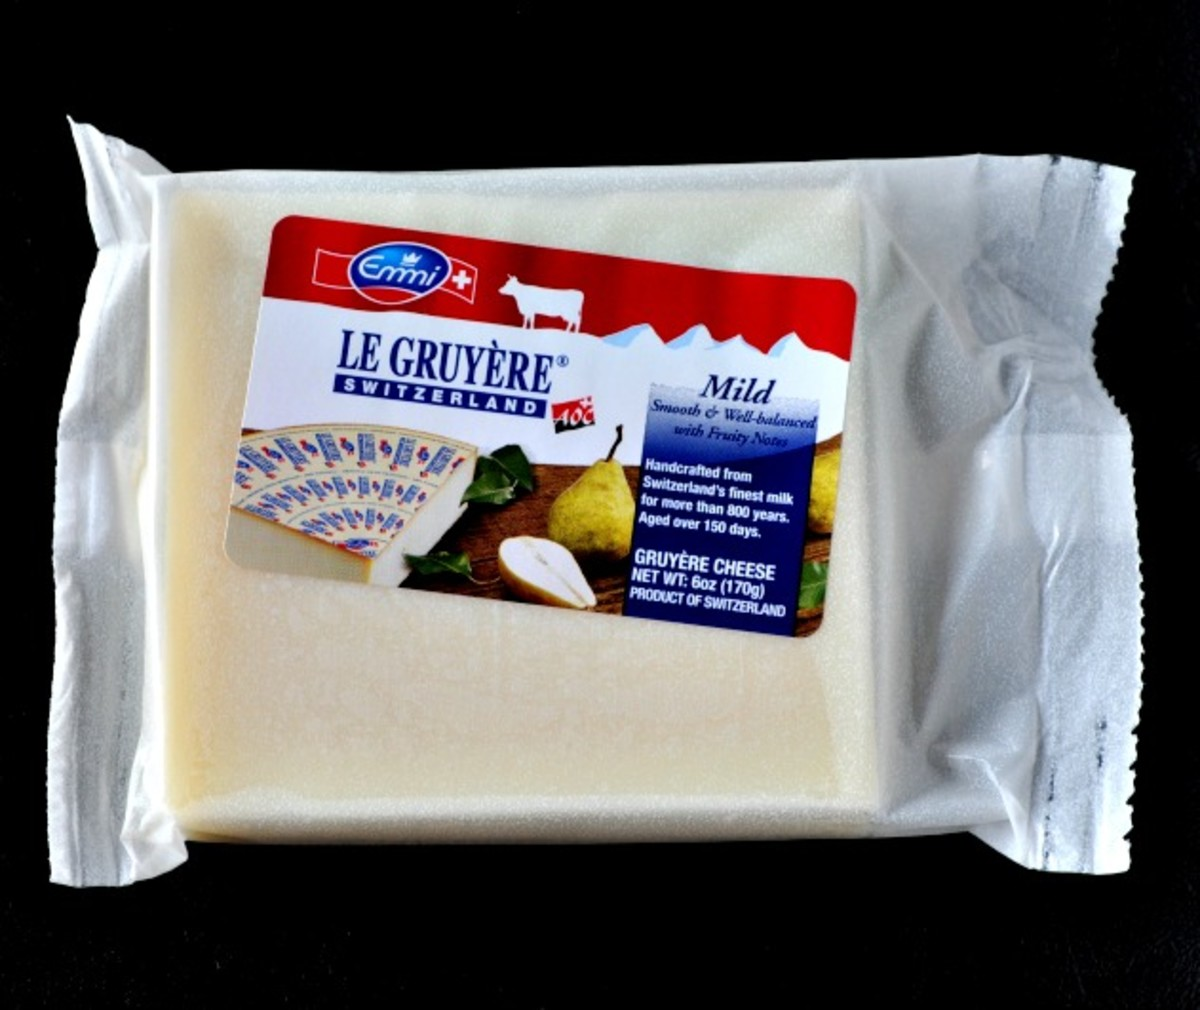 Easter Brunch - Gruyere Potatoes with Le Gruyere Cheese of Switzerland on TodaysMama.com #easter #brunch